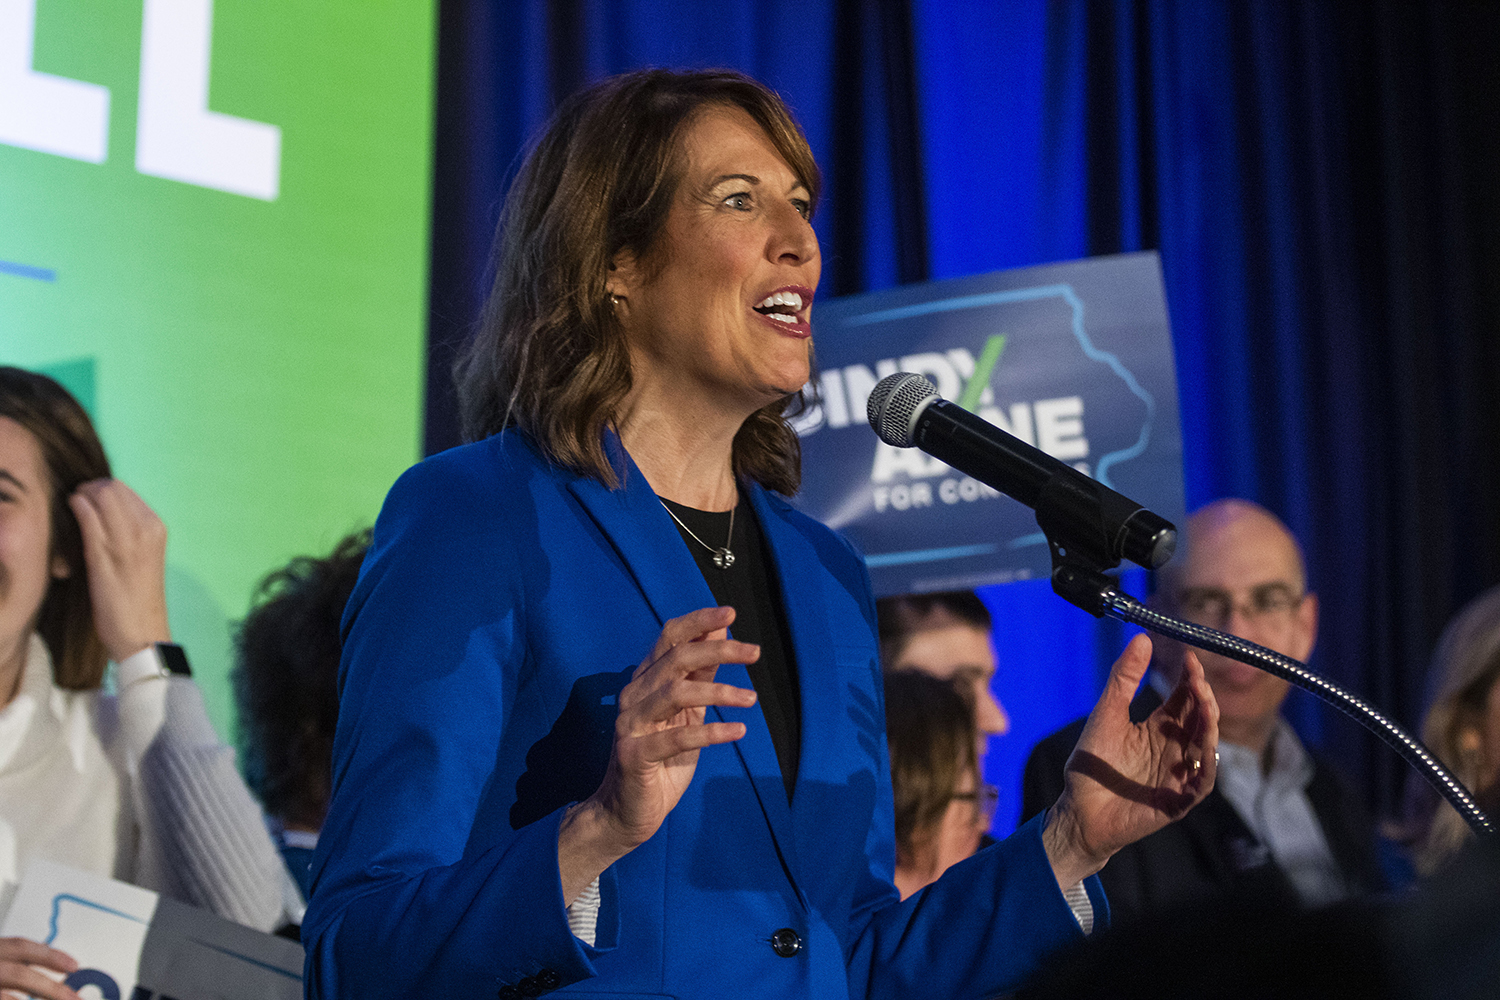 Iowa 3rd Congressional District-elect Cindy Axne speaks to supporters during the statewide Democratic candidates' watch party at Embassy Suites in Des Moines on Nov. 6, 2018.